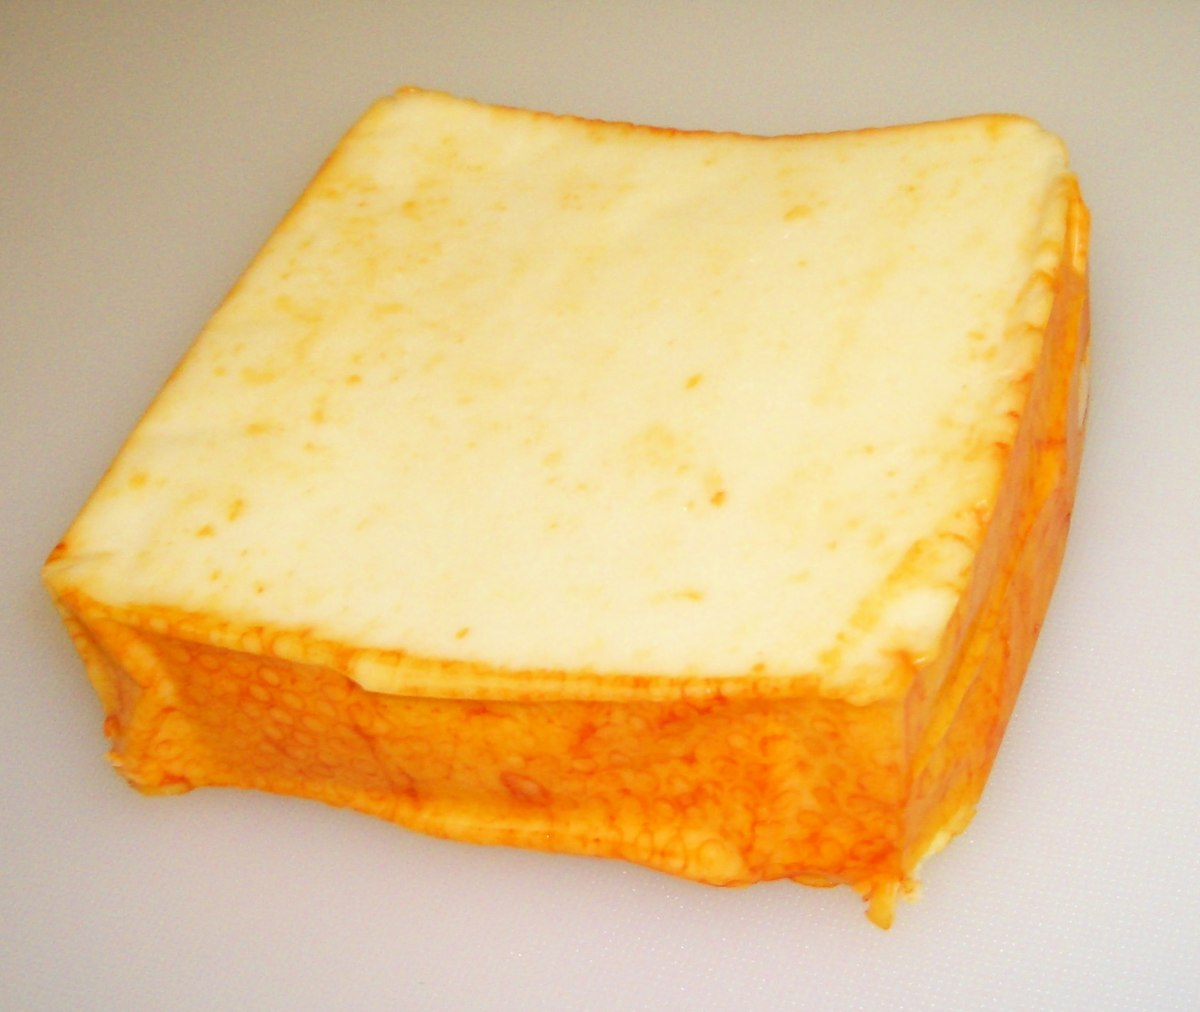 Muenster cheese - Wikipedia